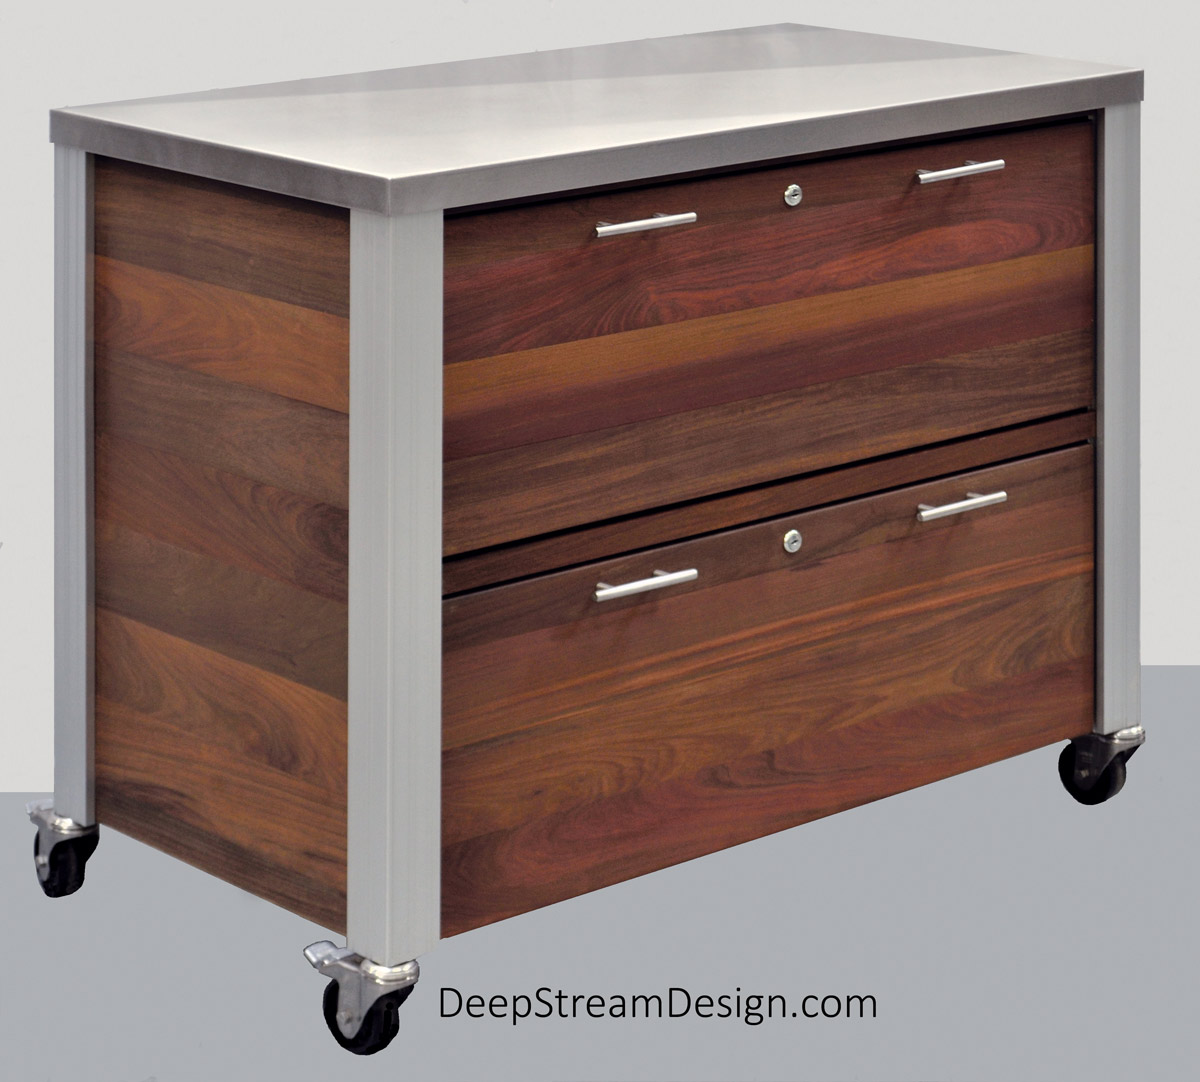 Studio photos of a weatherproof Ipe tropical hardwood Outdoor Restaurant Food Service Cabinet with two waterproof hygienic HDPE drawers and 316 stainless steel countertop, on stainless steel caster wheels.